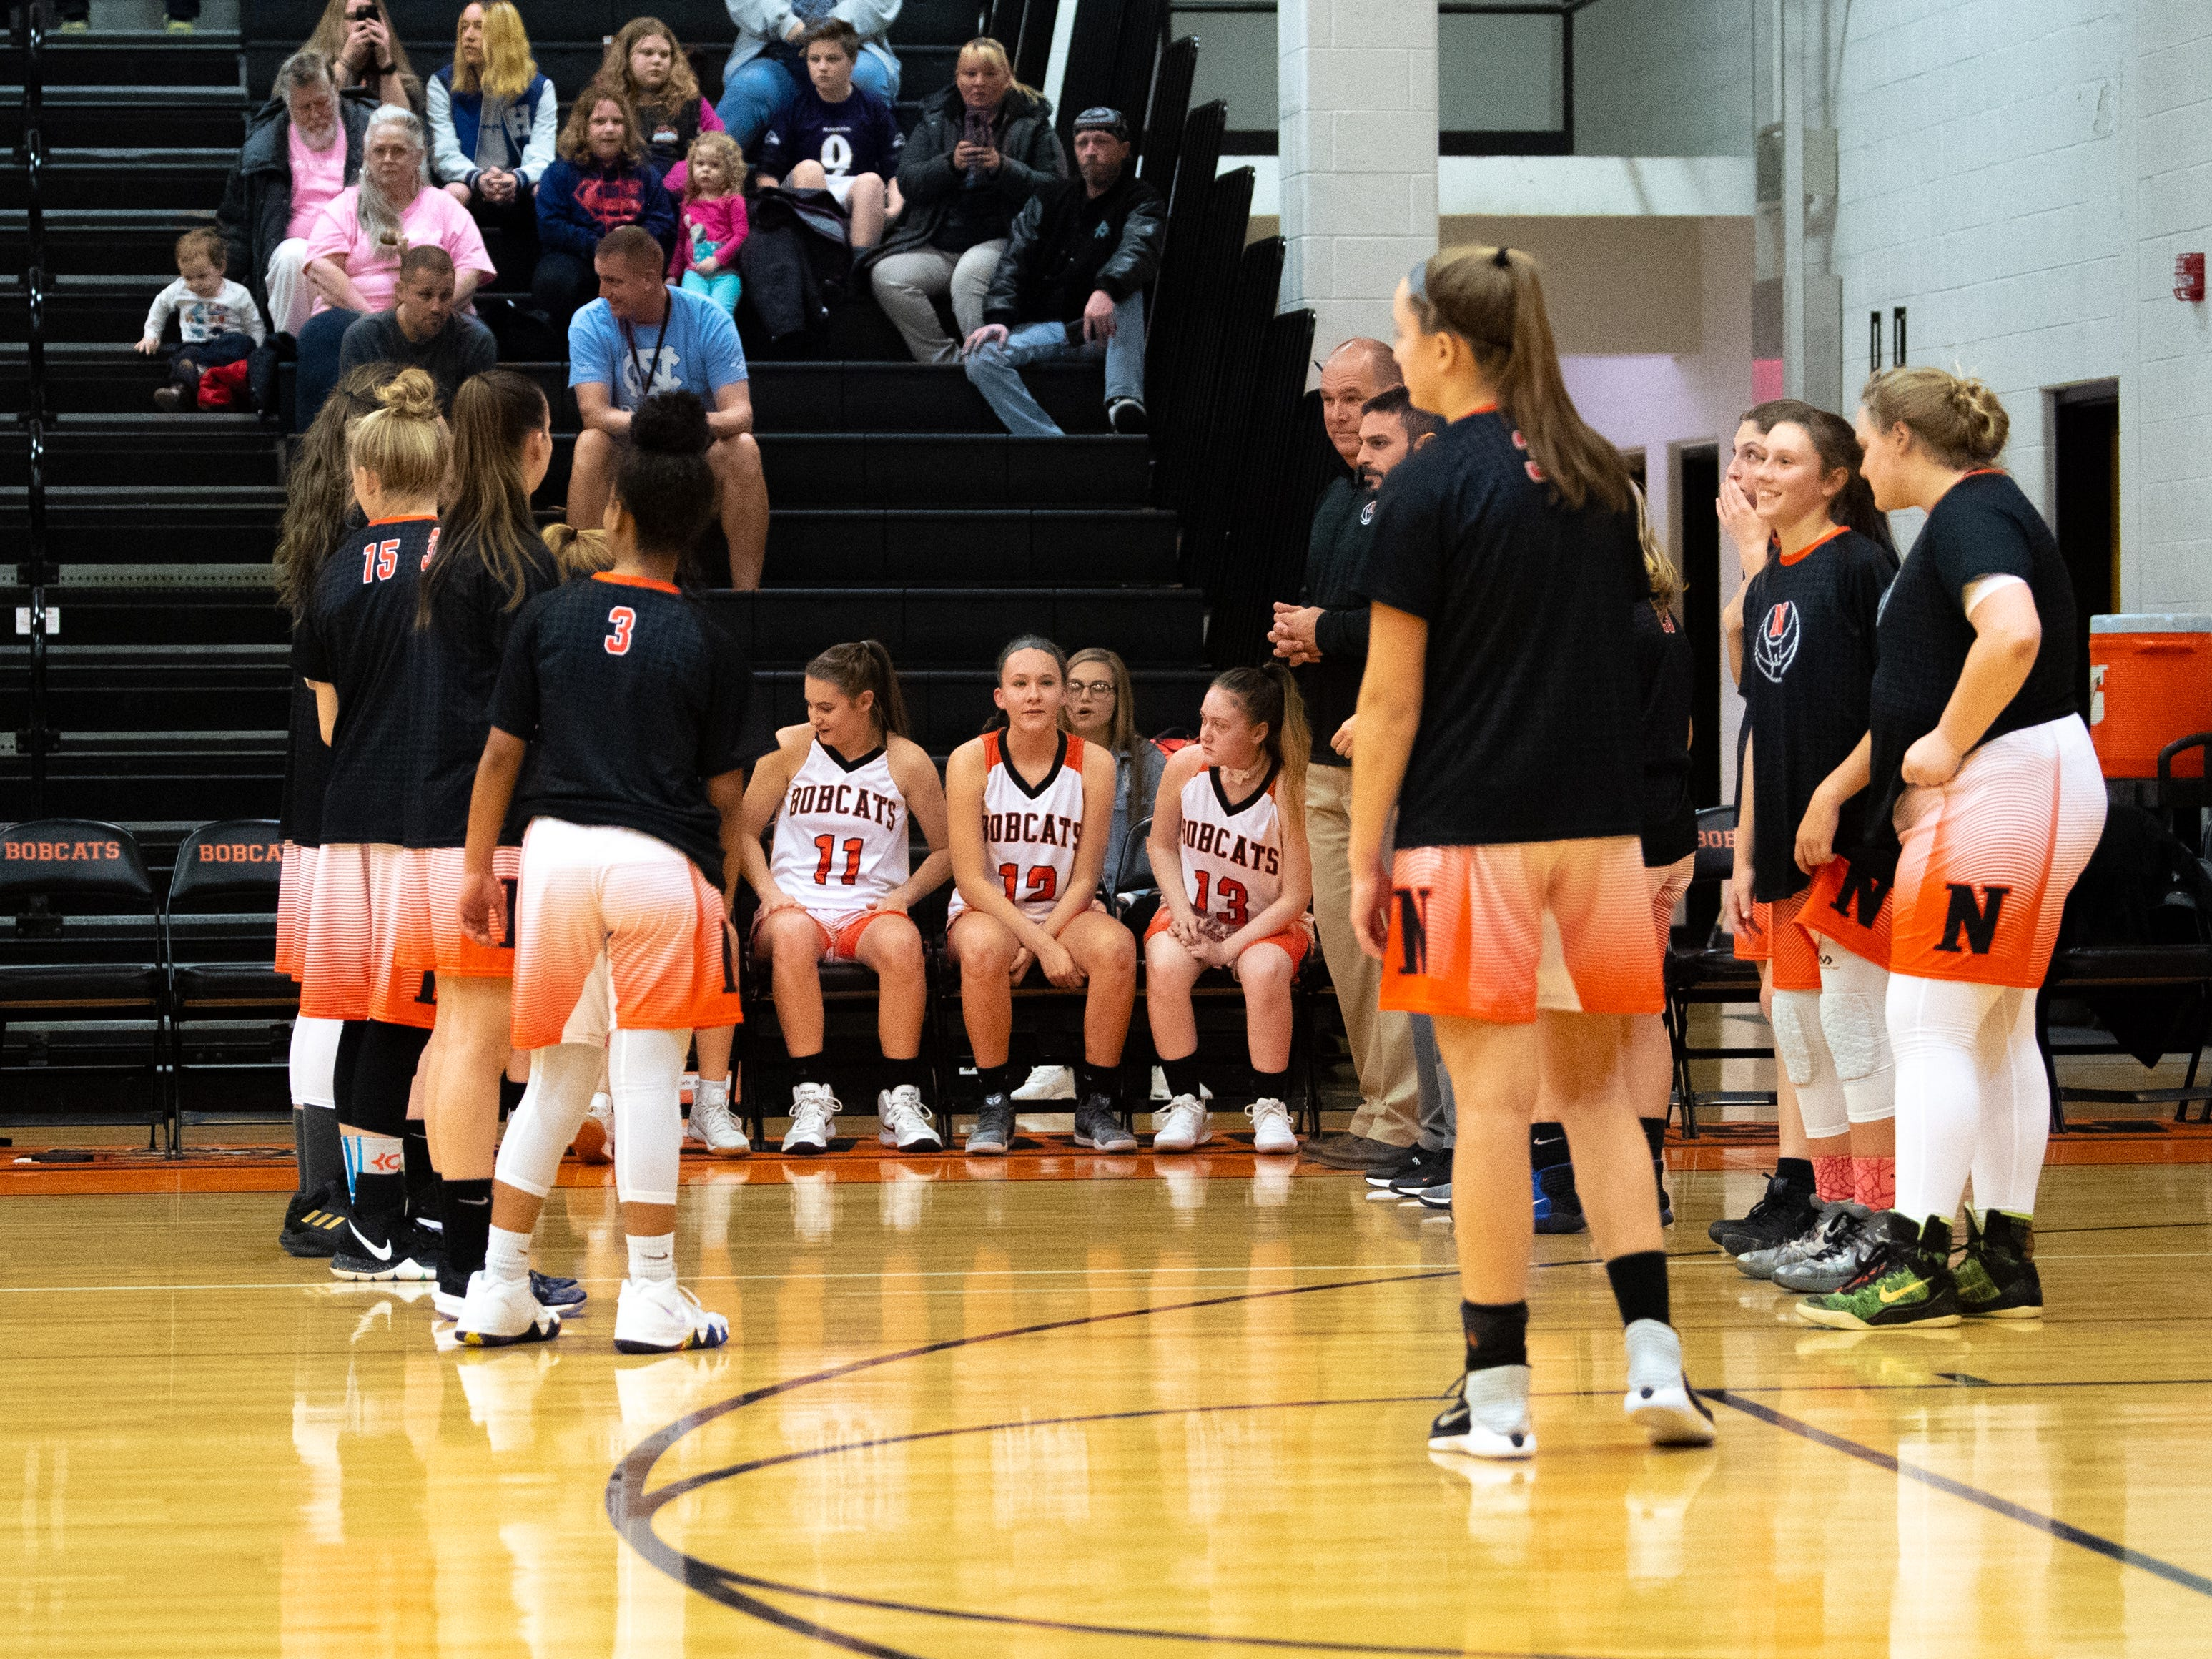 Northeastern's starters prepare to be called before their game against Cocalico at Northeastern High School, Wednesday, December 12, 2018.